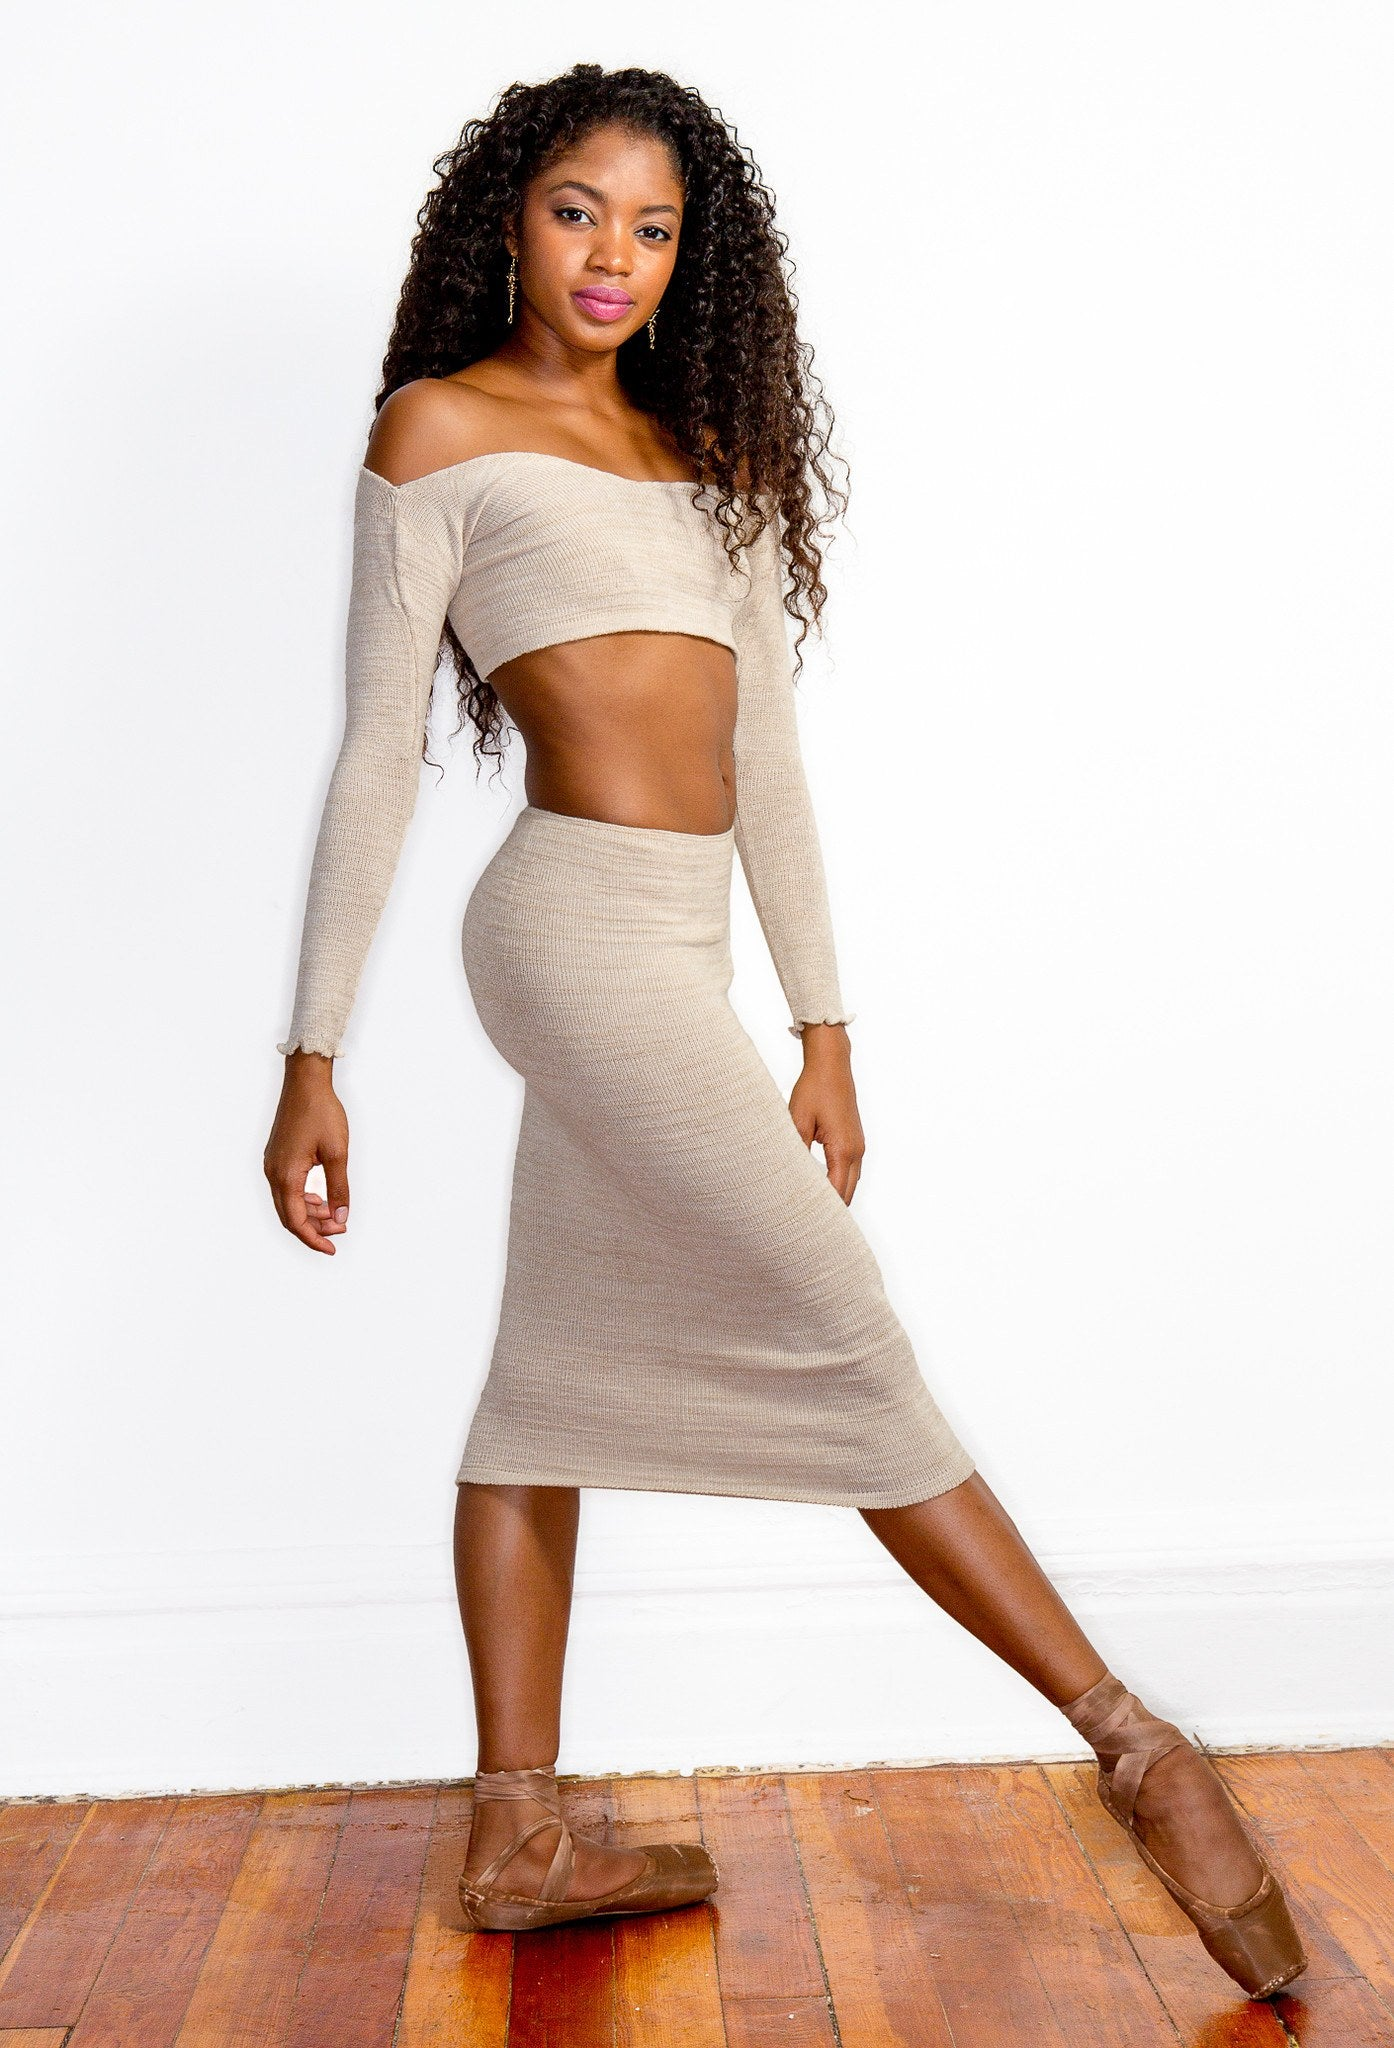 Chocolate / Small Sexy Sweater Dress Set Off The Shoulder Stretch Knit Crop Top & Knee High Tube Skirt by KD dance New York Cozy & Fashionable @KDdanceNewYork #MadeInUSA - 1